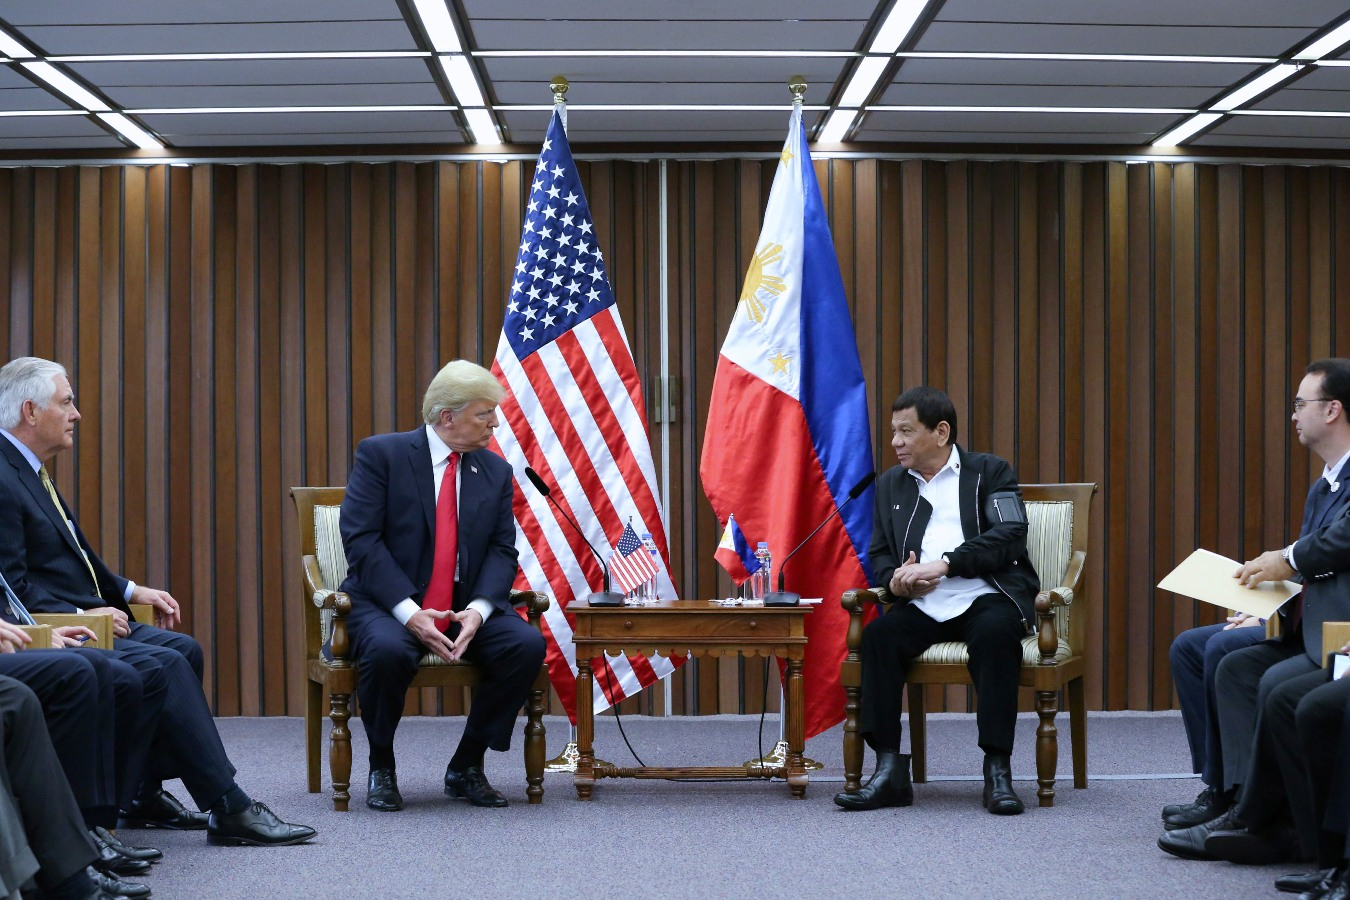 President Rodrigo Roa Duterte and US President Donald Trump discuss matters during a bilateral meeting at the Philippine International Convention Center in Pasay City on November 13, 2017. KARL NORMAN ALONZO/PRESIDENTIAL PHOTO